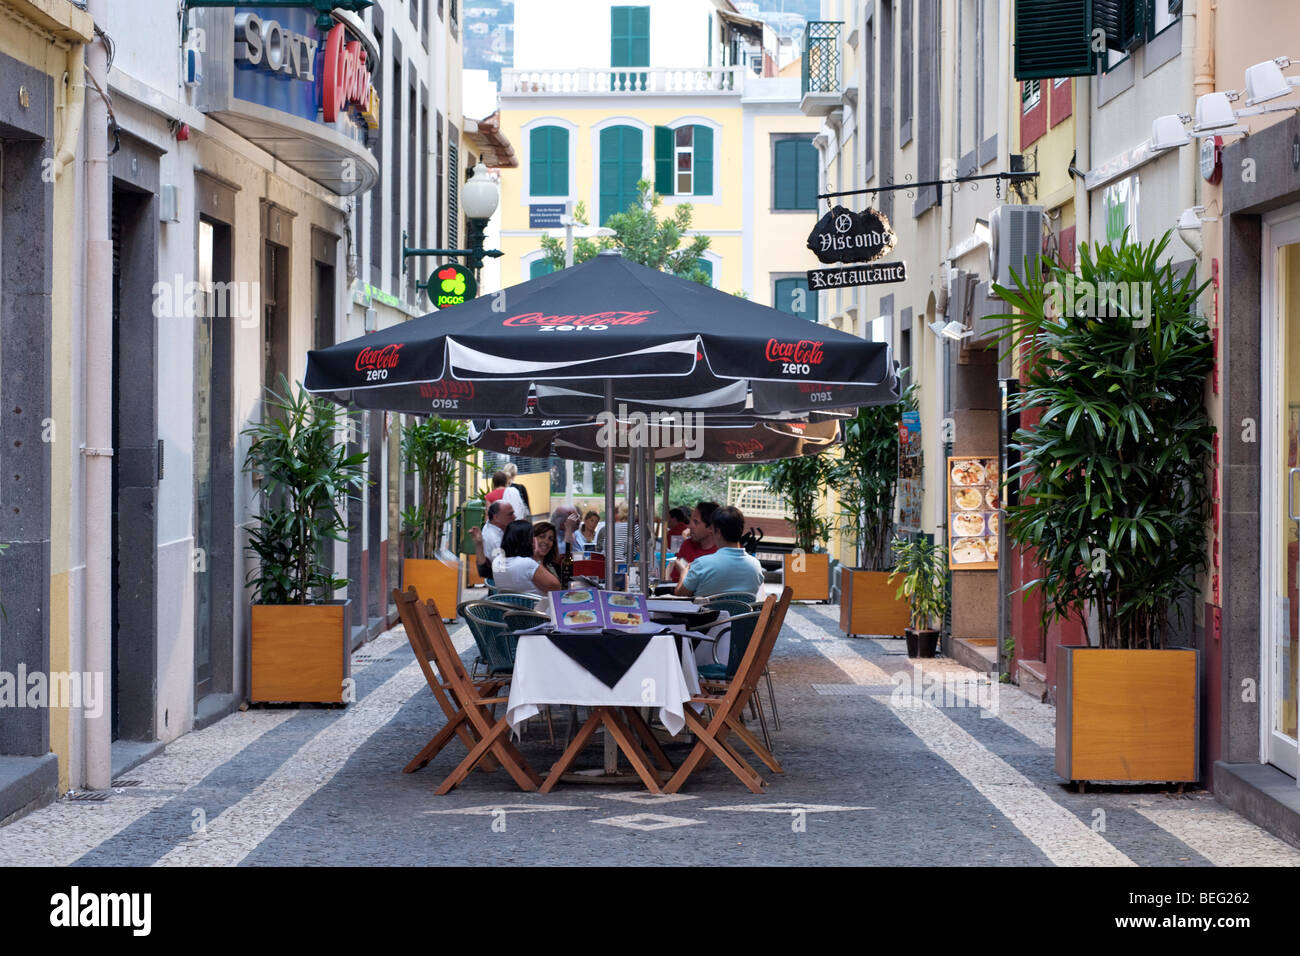 Restaurant tables on a pedestrian street in Funchal, Madeira. - Stock Image